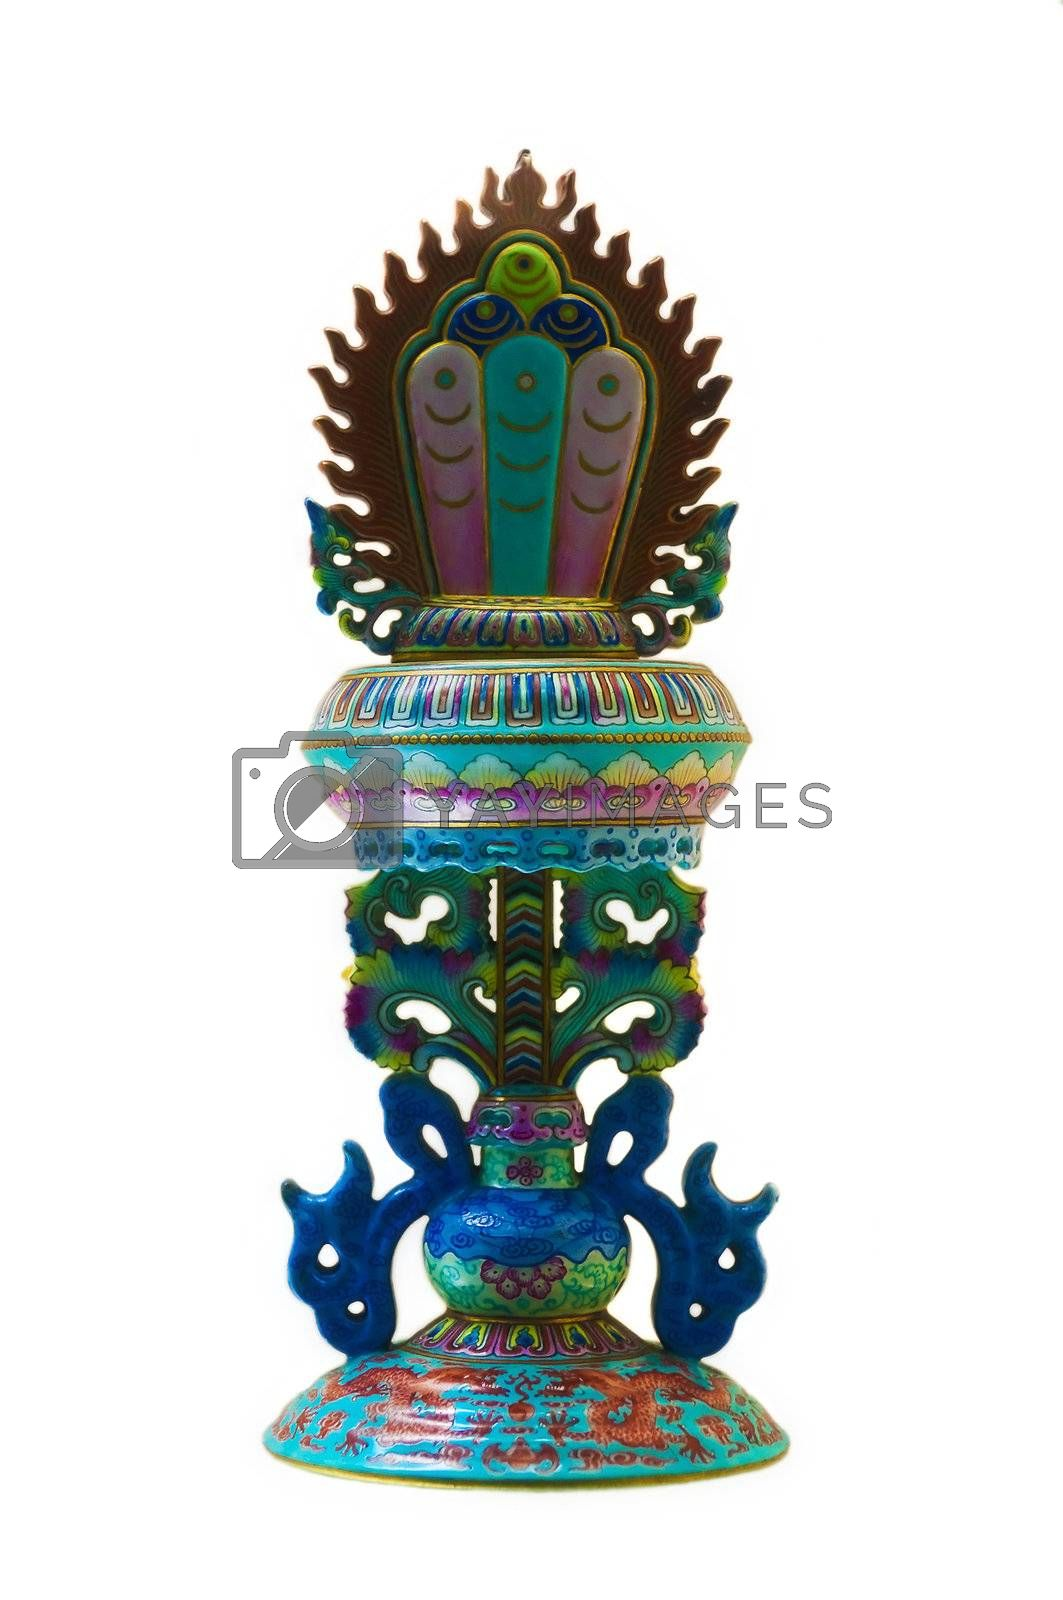 Royalty free image of Ancient Ceramic Sculpture by tonyoquias